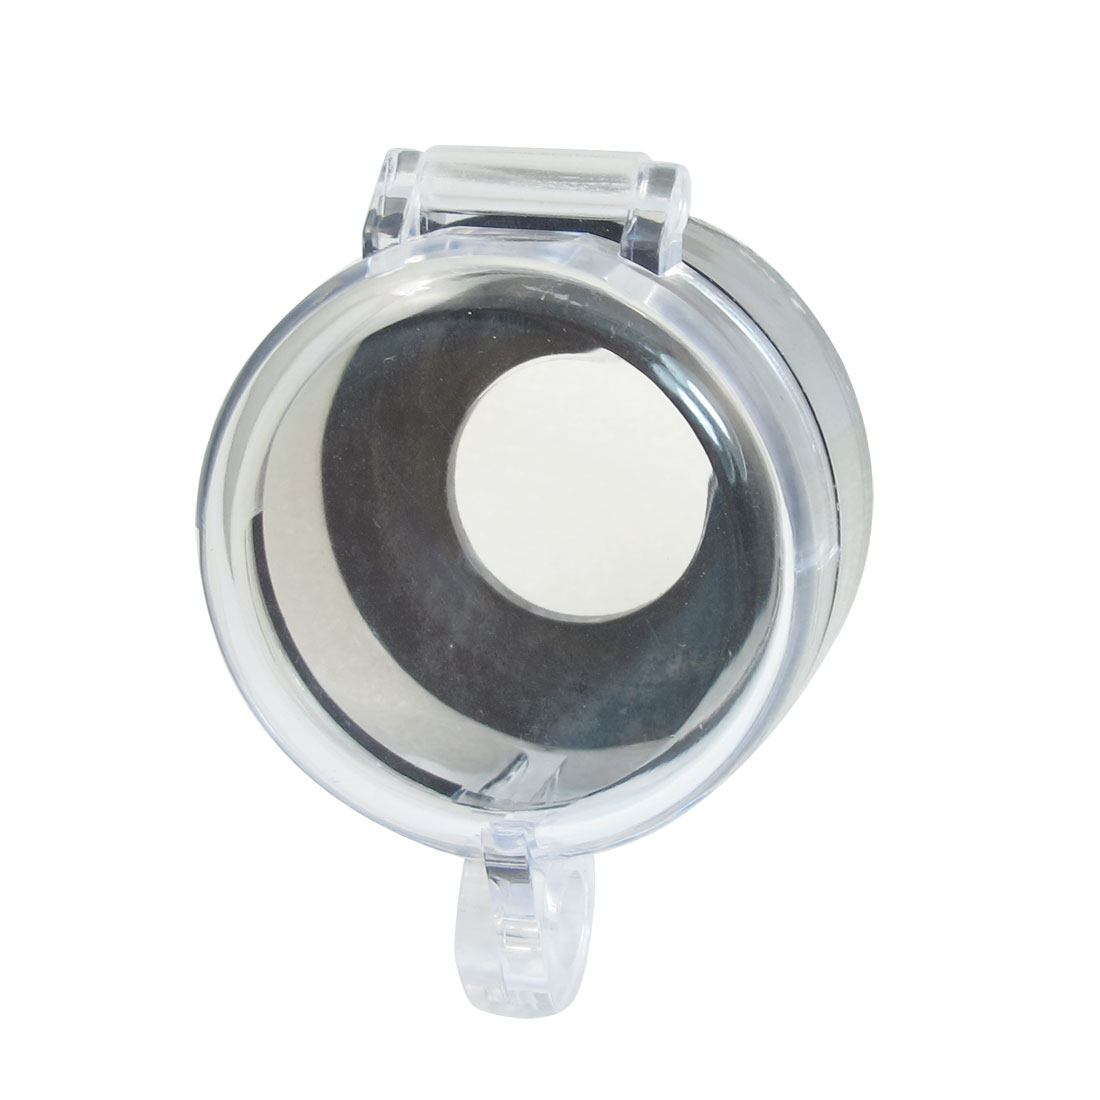 Clear 22mm Protective Cover Guard Case for Round Push Button Switch